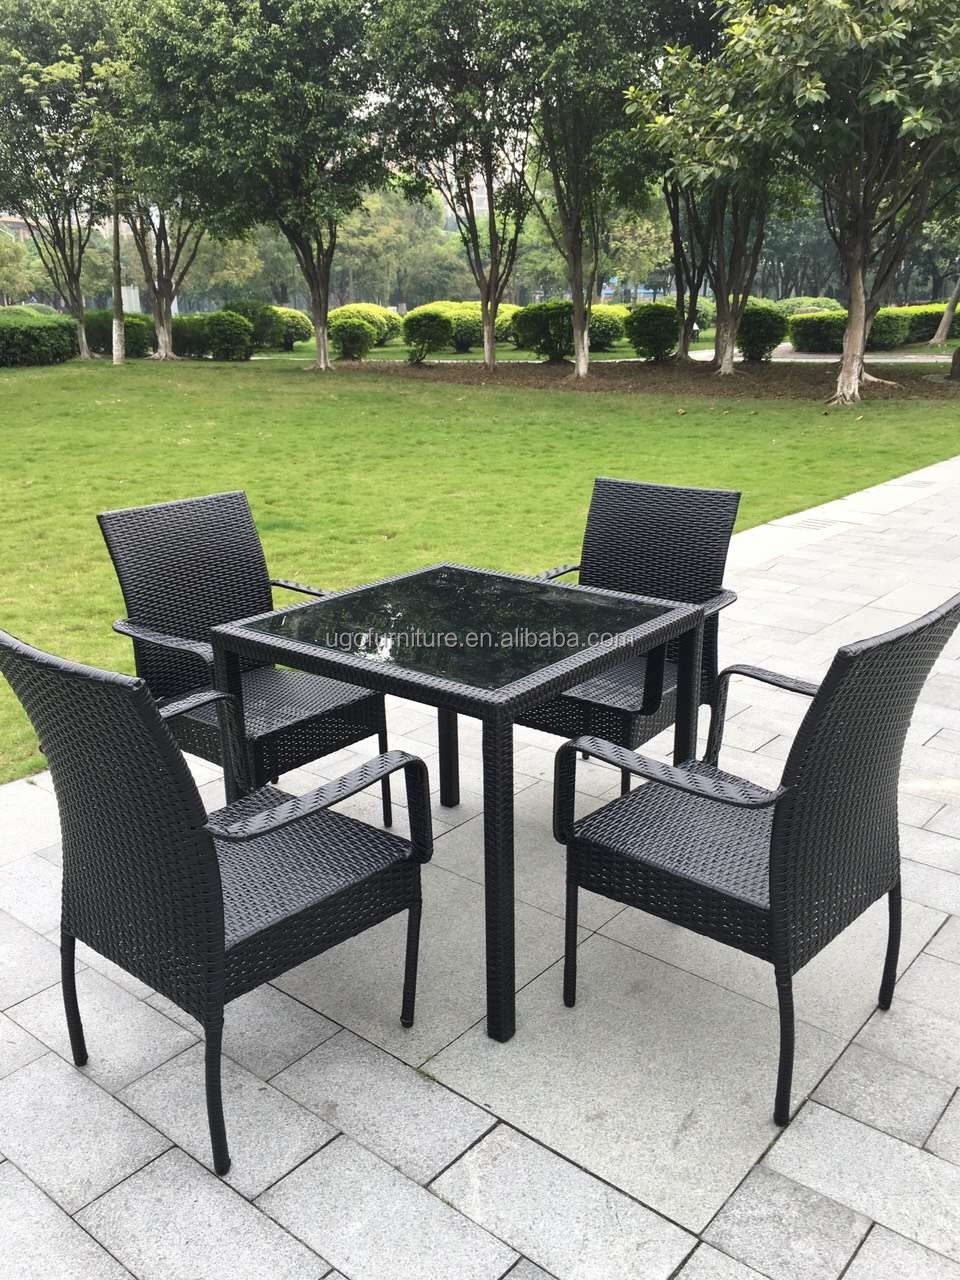 Cheap Rattan Dining Chair With Tempered Glass Top Table ...